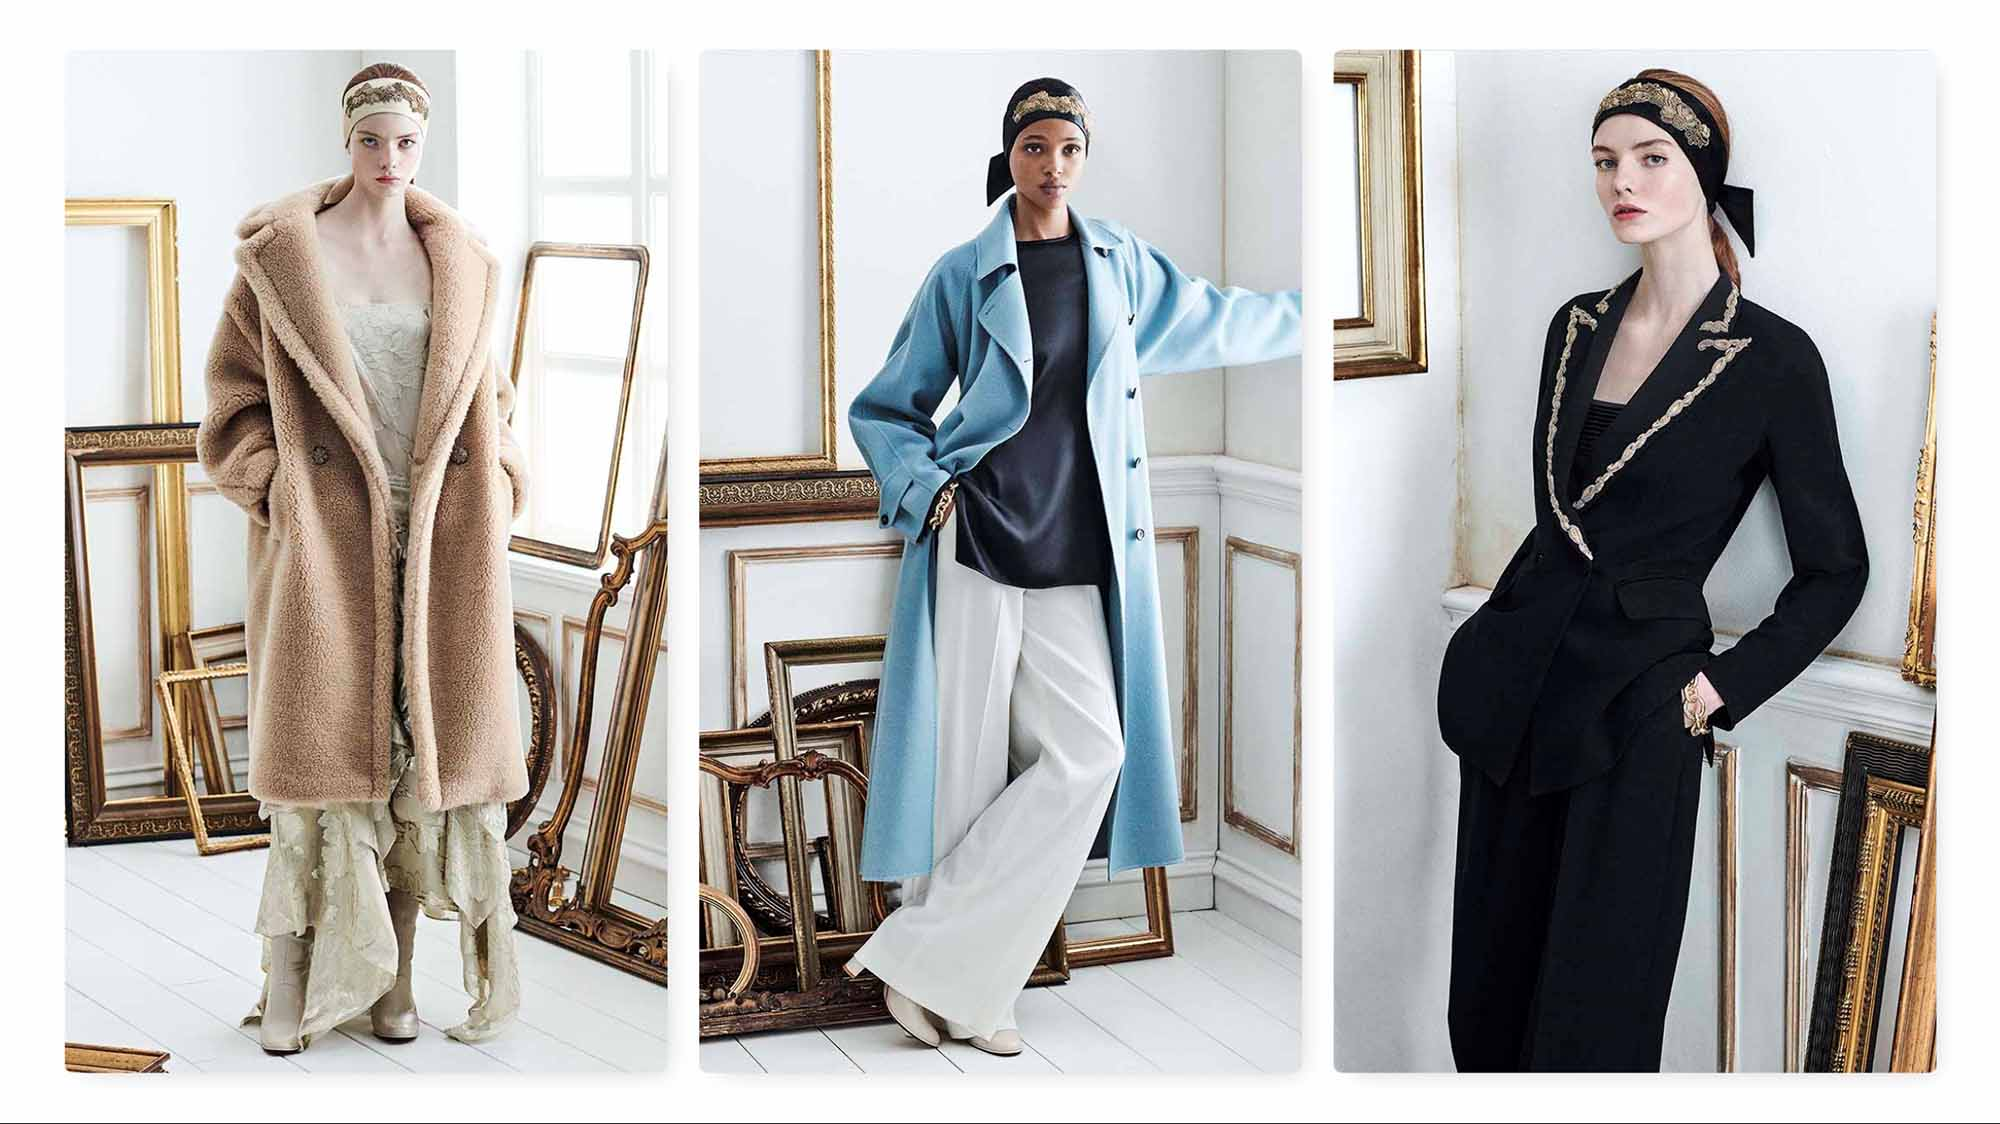 Max Mara Resort 2021: Reason and Romance